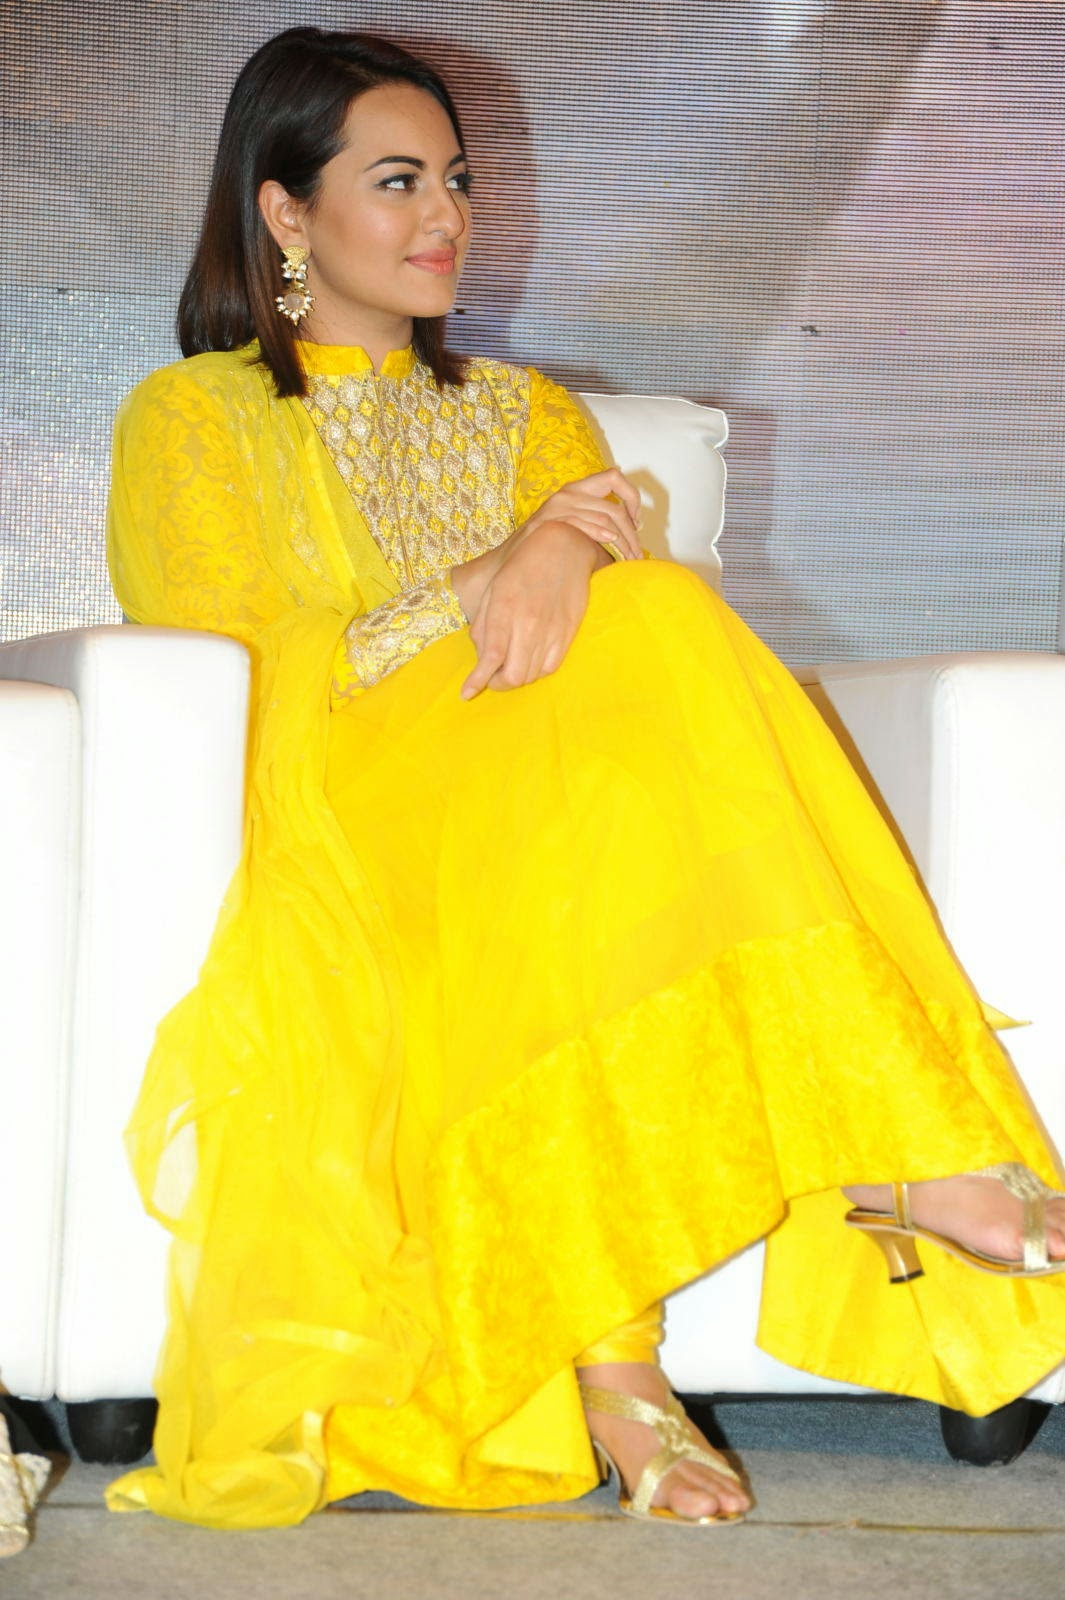 Sonakshi Sinha Photo Gallery with no Watermarks, Sonakshi Sinha Yellow Suit Pics from Lingaa Movie Event